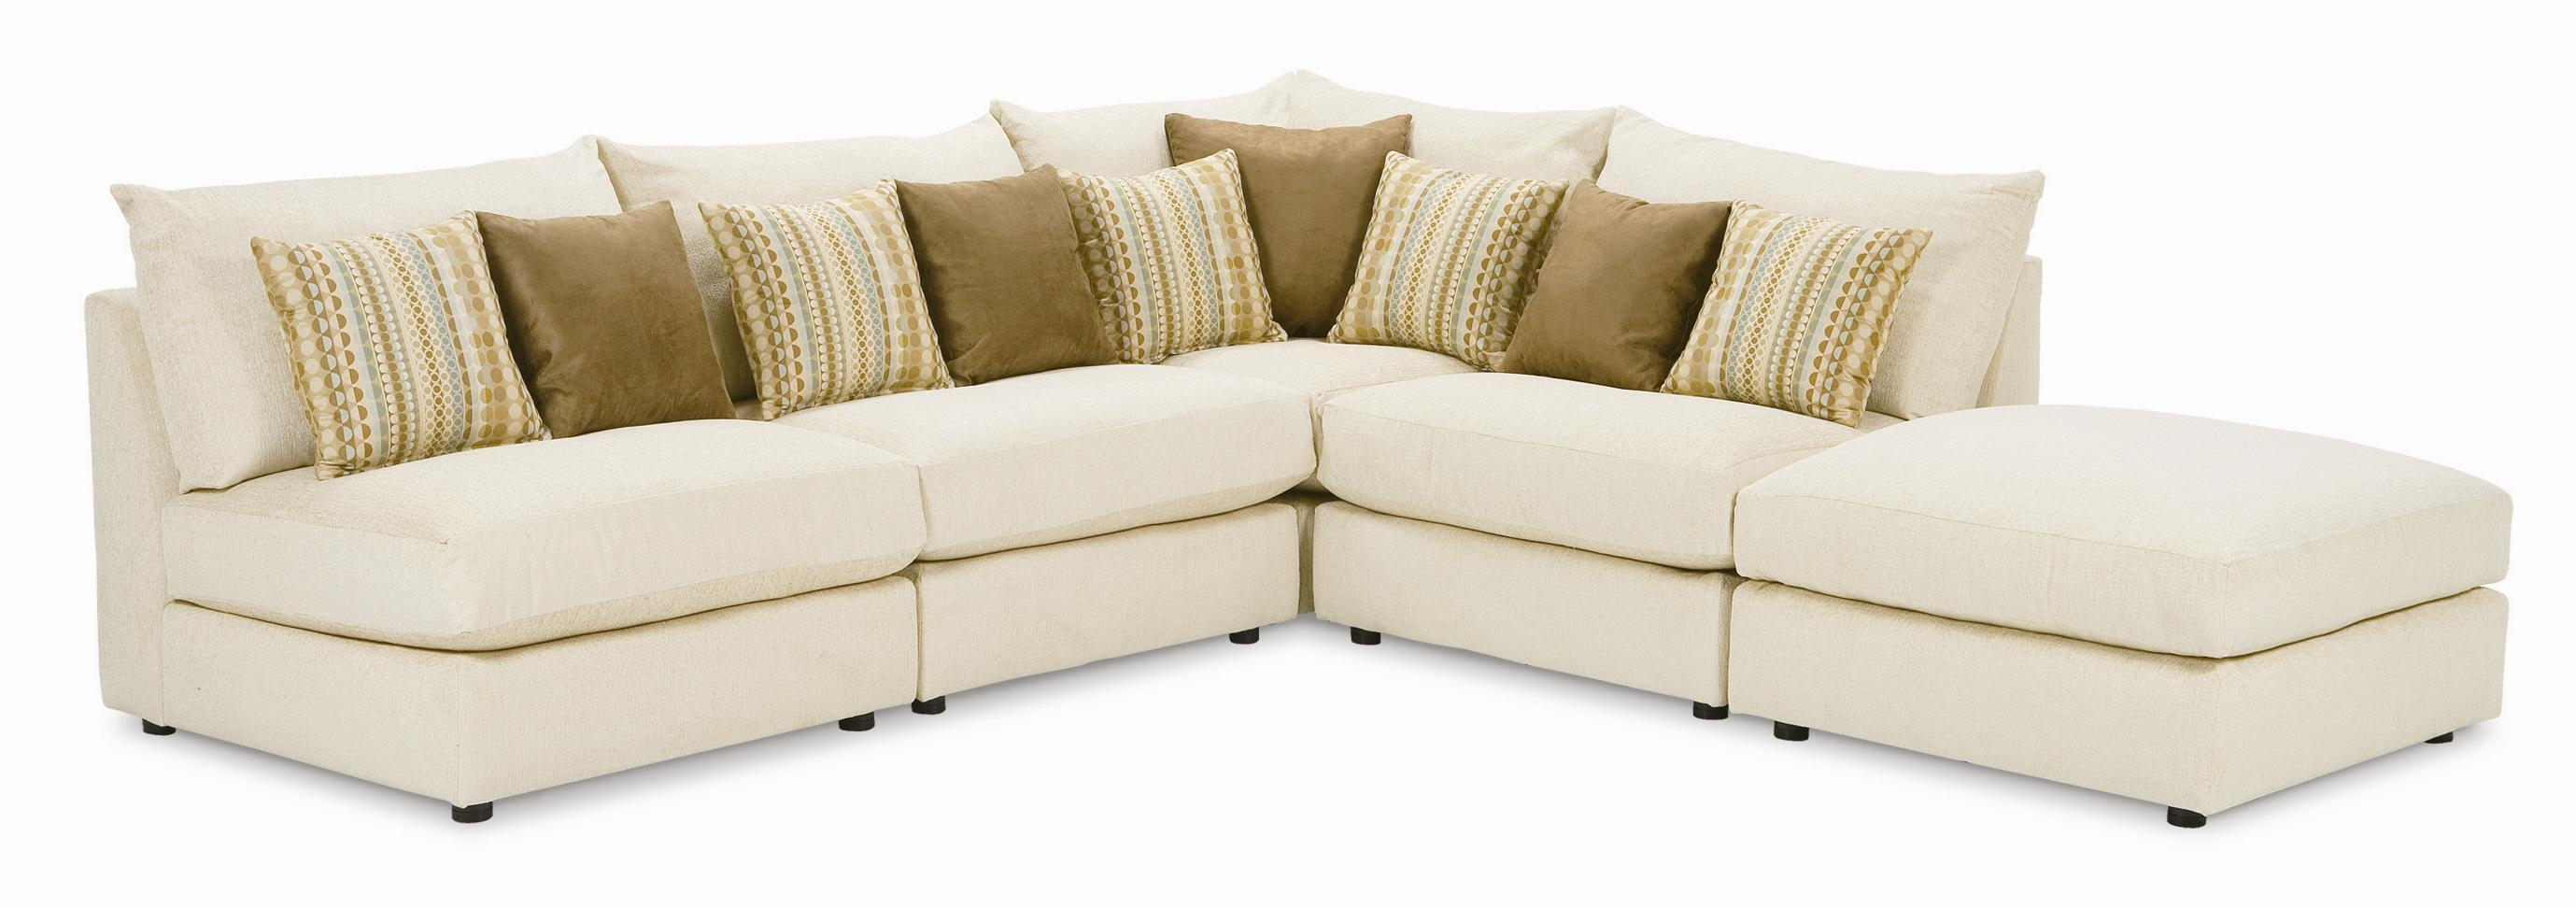 15 Choices Of Armless Sectional Sofa Ideas